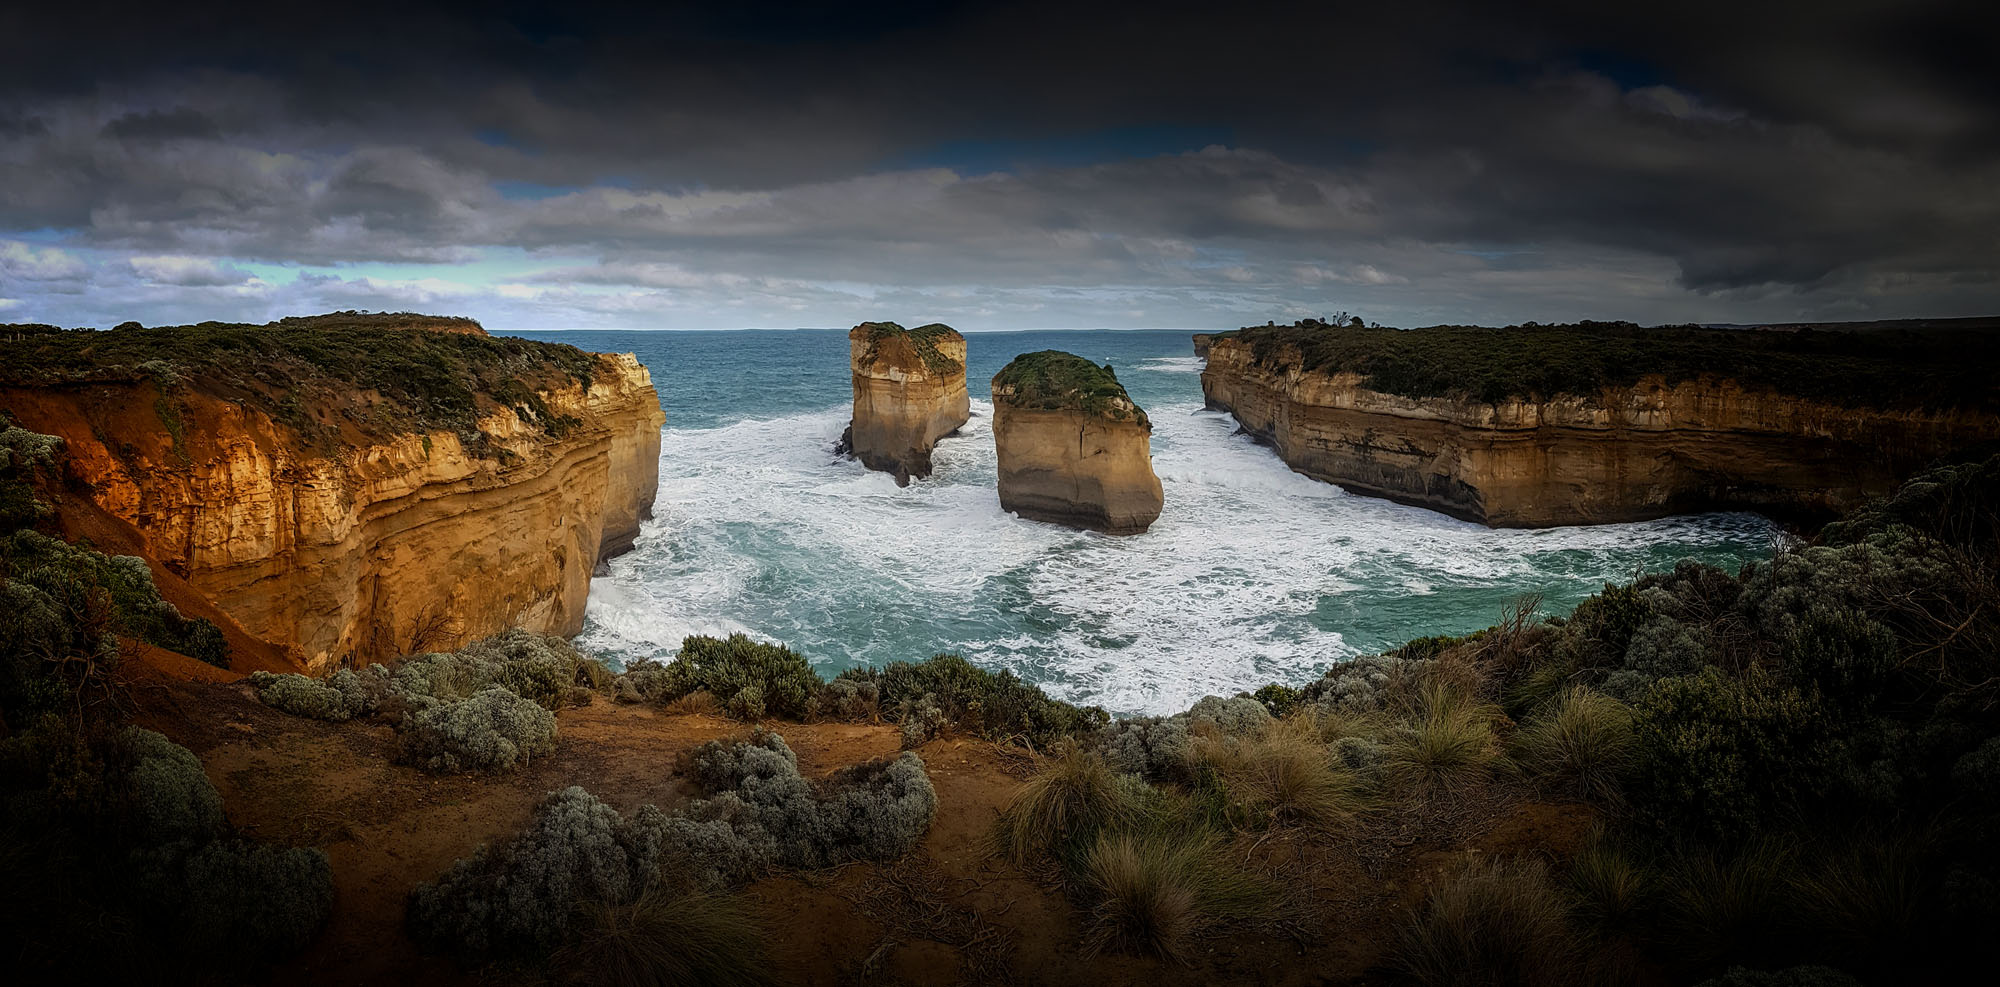 Near Loch Ard Gorge, these two used to be an arch and now they are known as Tom and Eva, the two survivors of the Loch Ard.